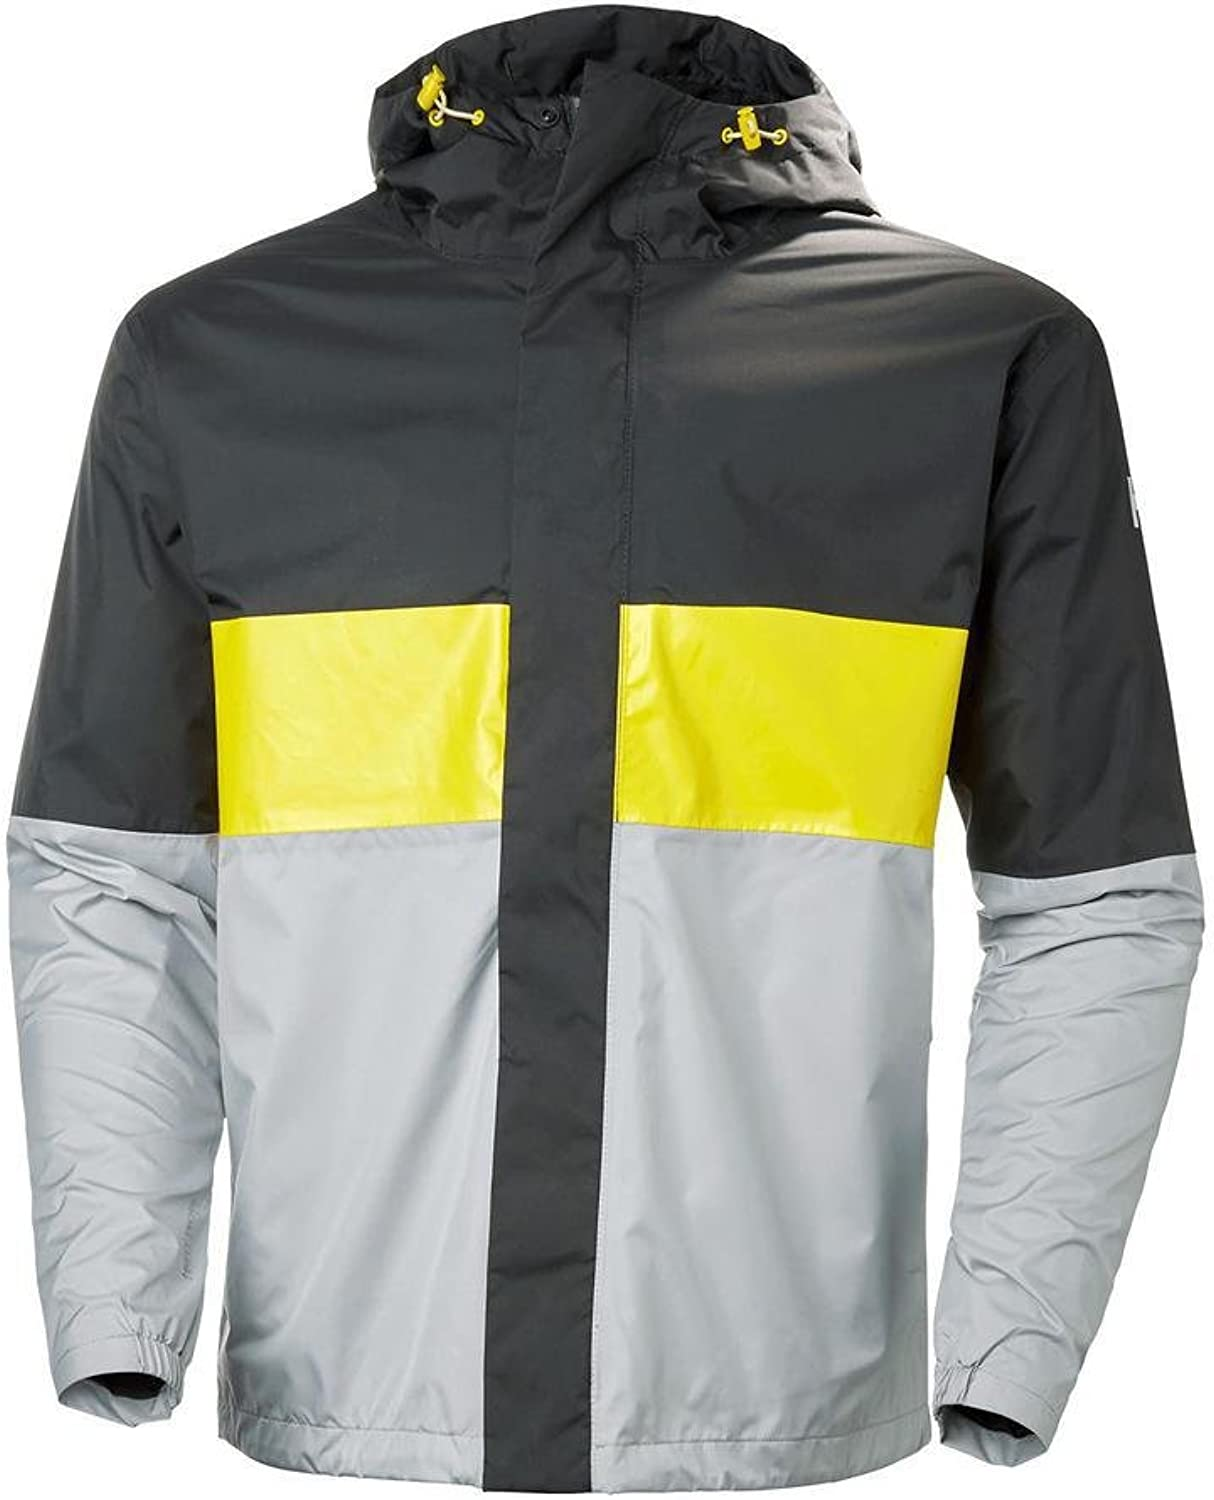 Helly Hansen Mens Active Windproof Breathable Waterproof Coat Jacket